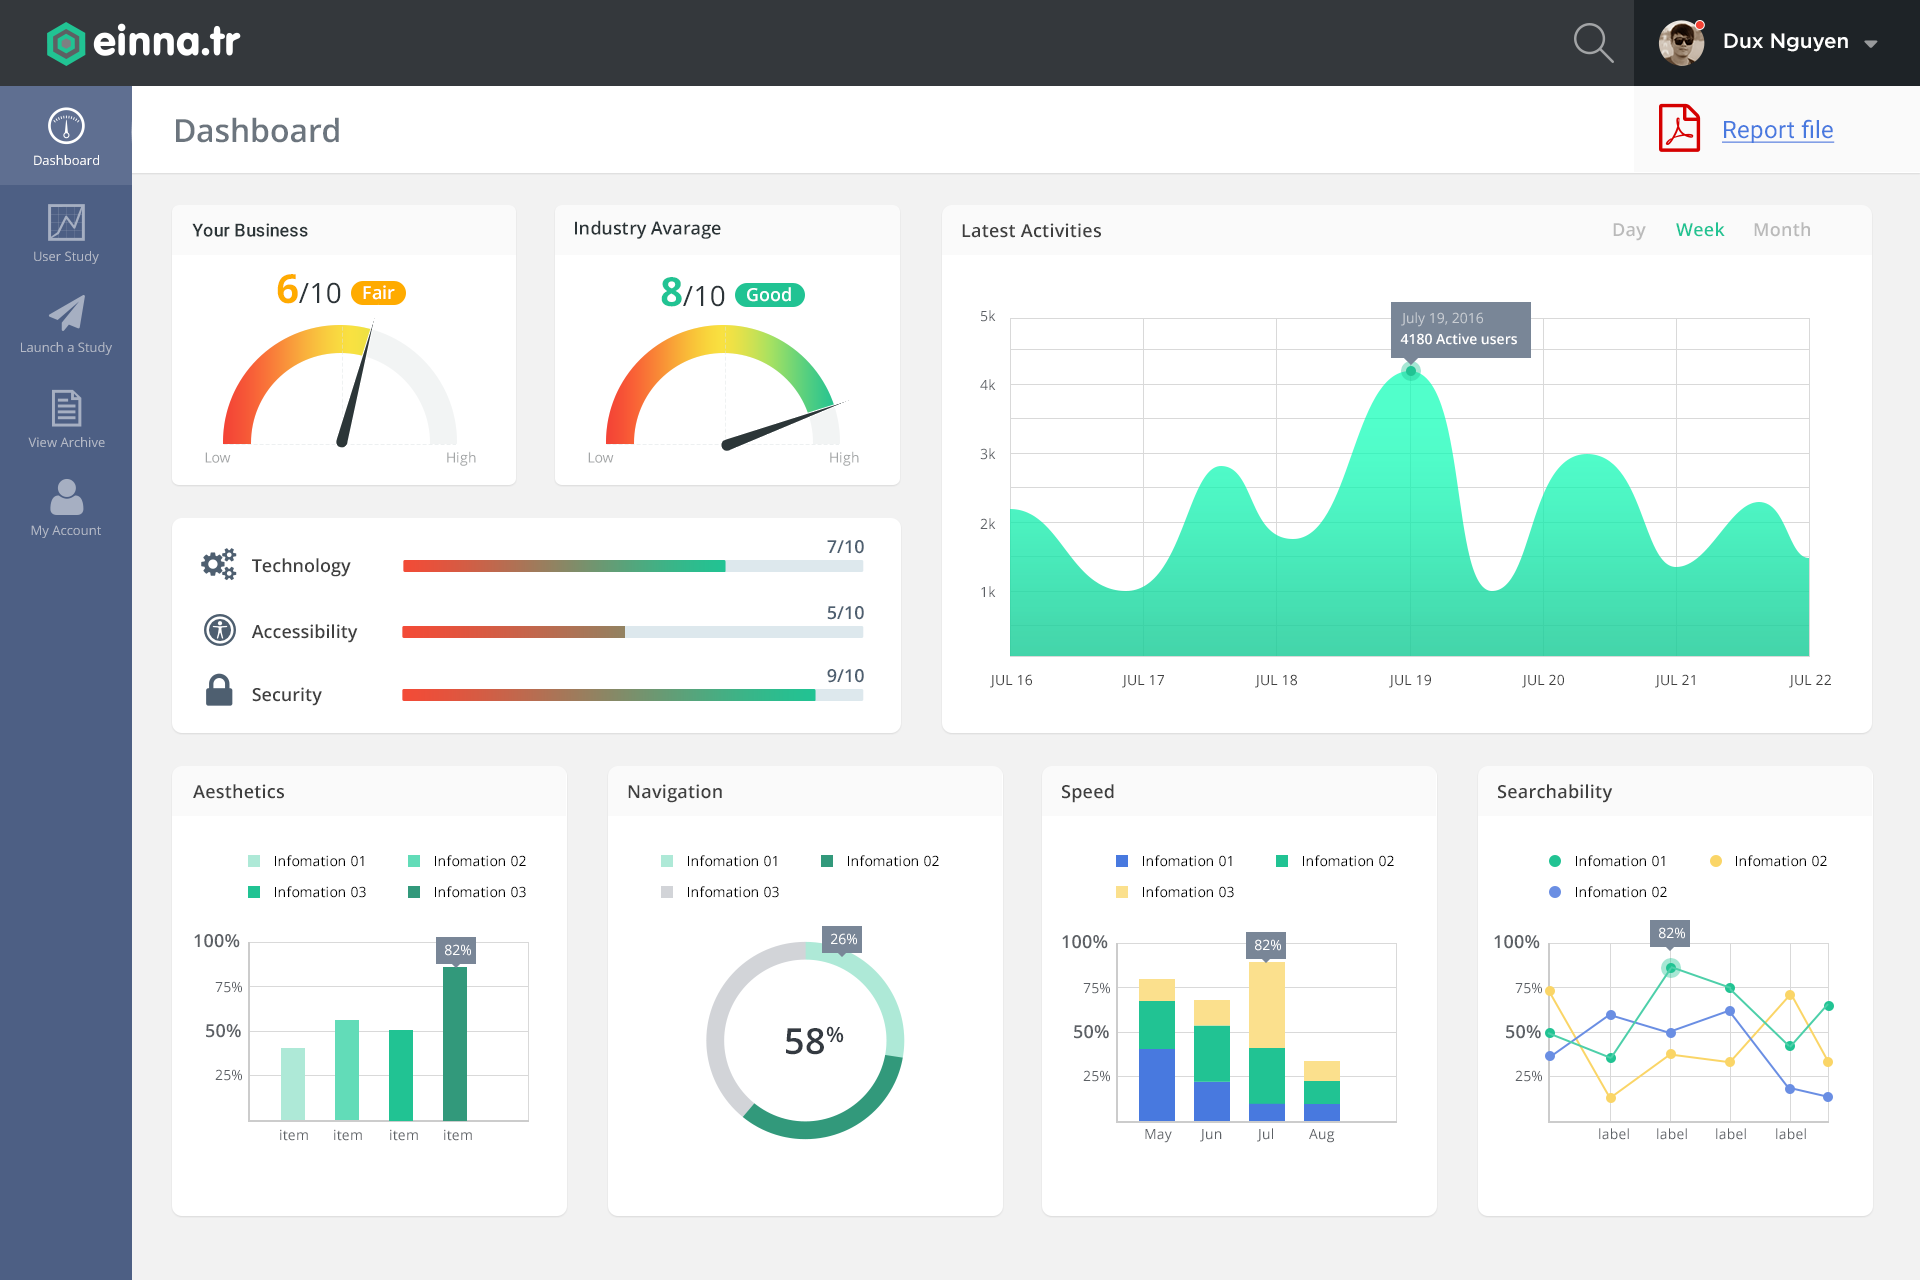 free dashboard templates powerpoint gallery - templates example, Powerpoint templates